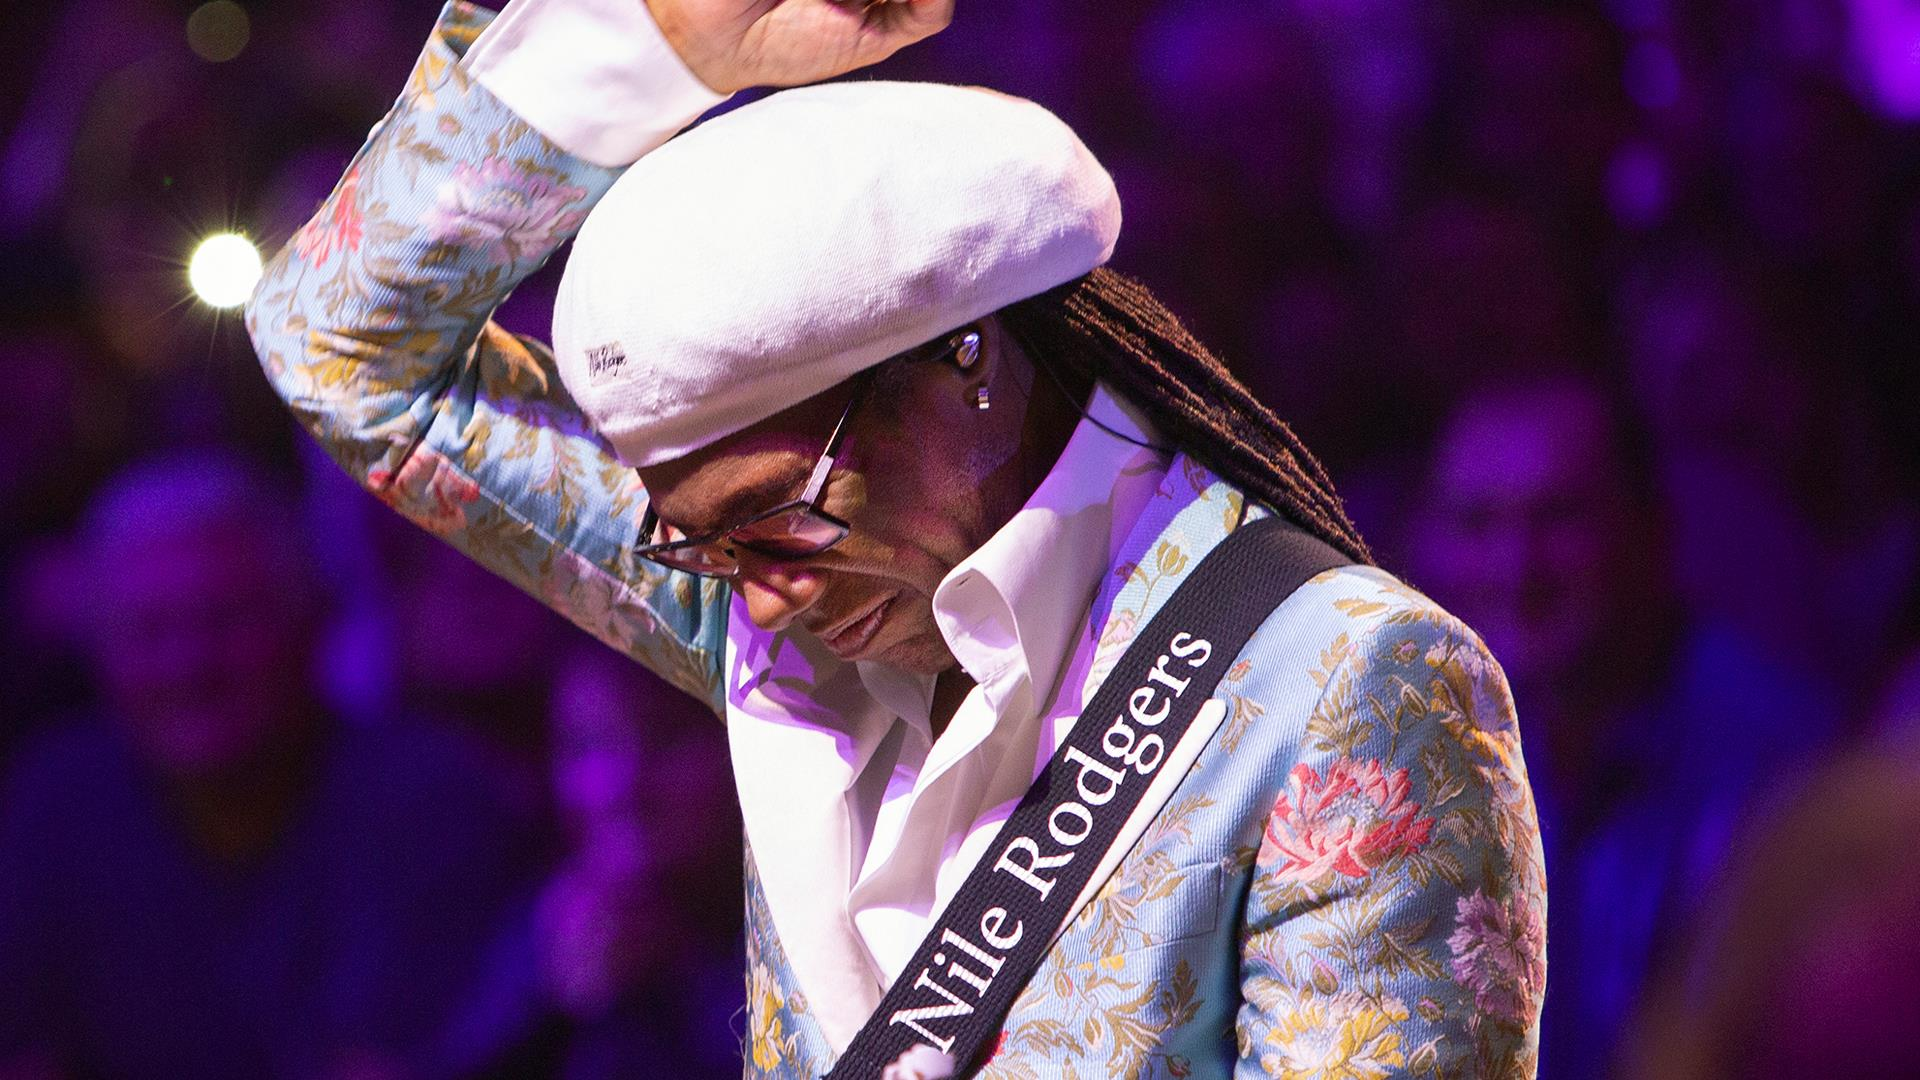 Nile Rodgers in floral blue blazer and white beret, lifts arm above head when performing for crowd.